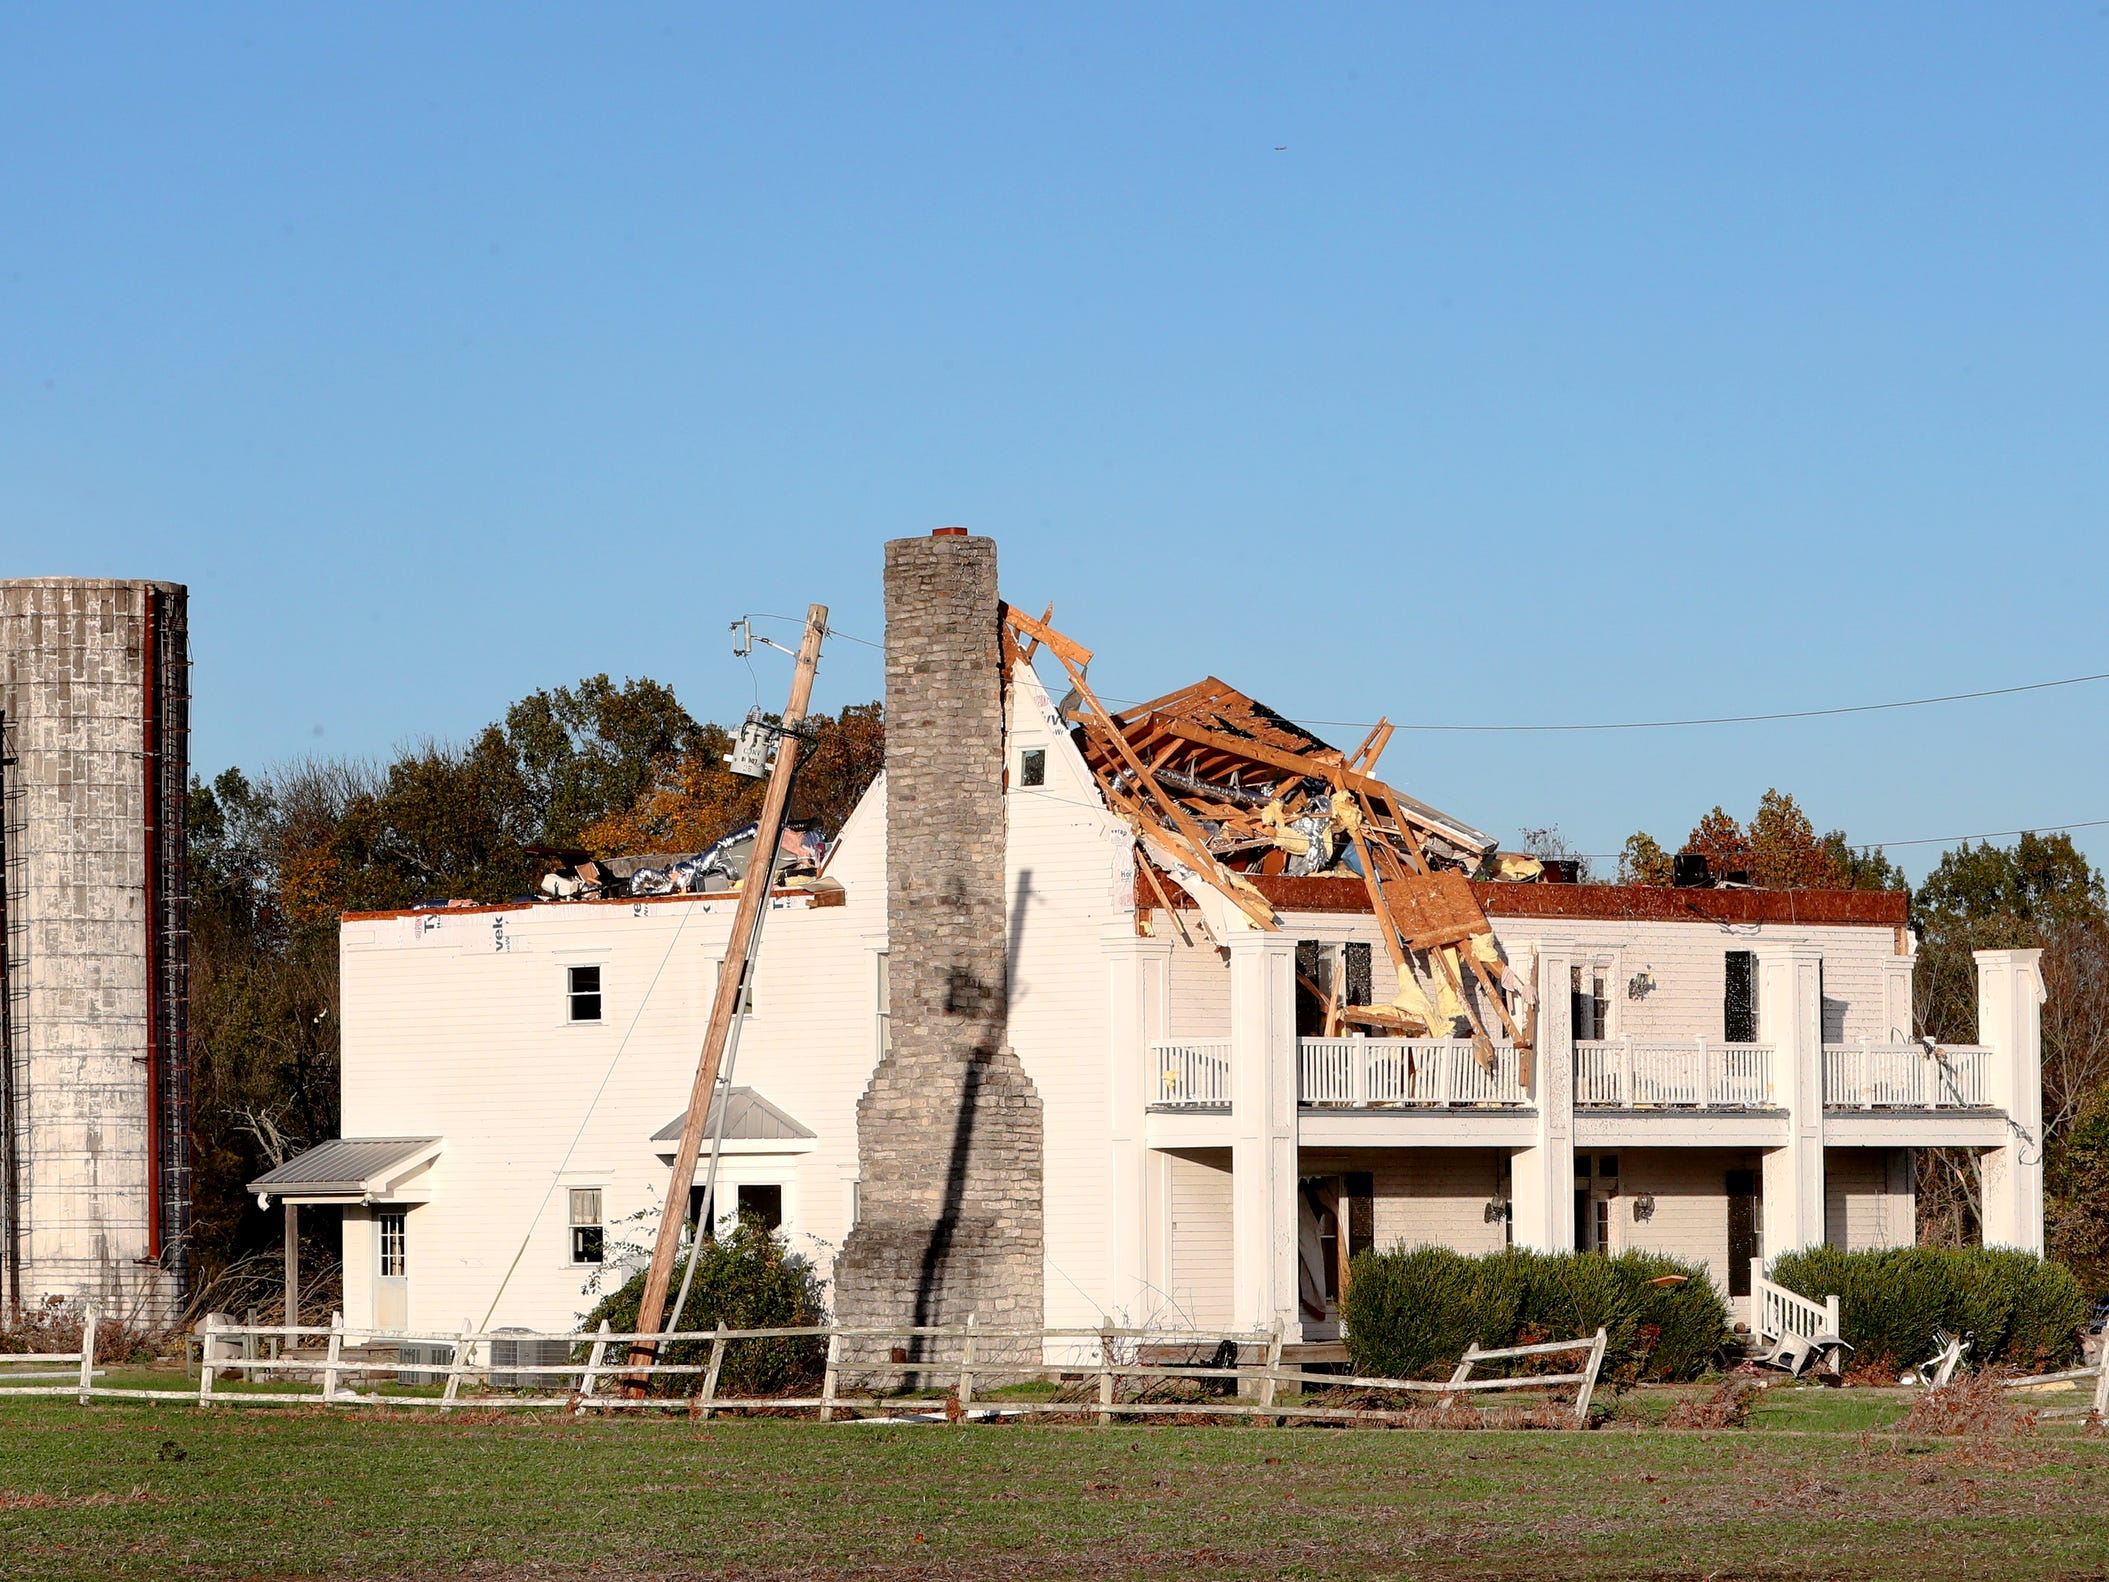 The top floor of the home of John and Tish Erdmann on Rock Springs Midland Road was removed due to a Tornado that blew through the area overnight in Christiana, Tenn. on Tuesday, Nov. 6, 2018.